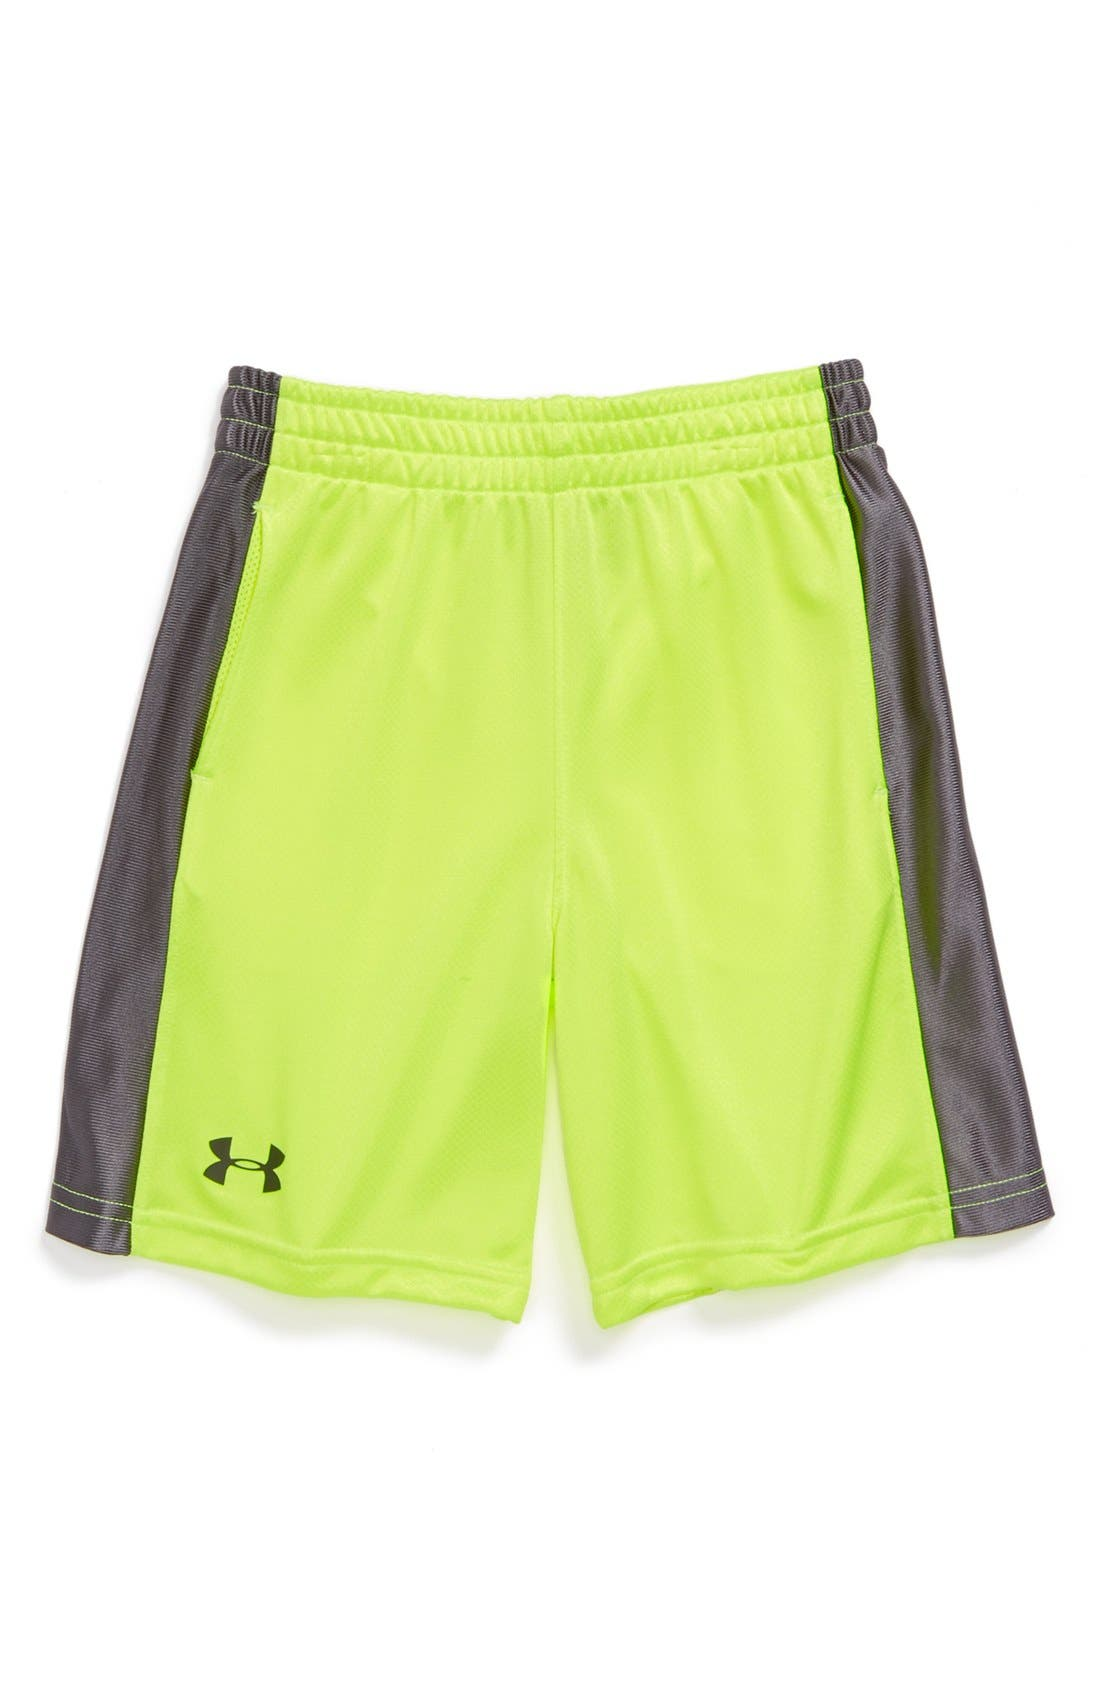 Main Image - Under Armour 'Pop Ultimate' Shorts (Little Boys)